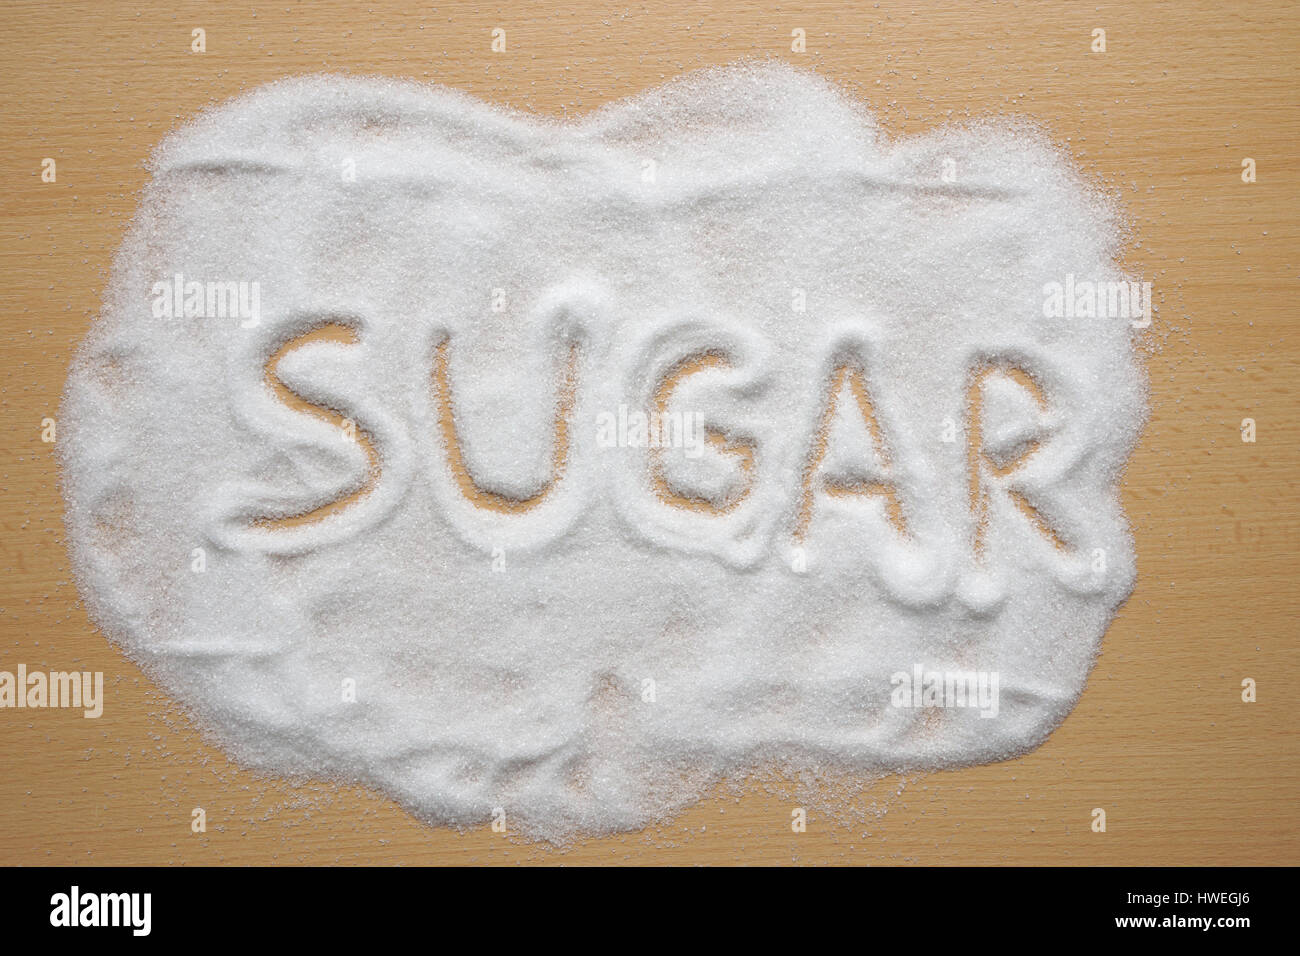 word sugar written in sugar - Stock Image